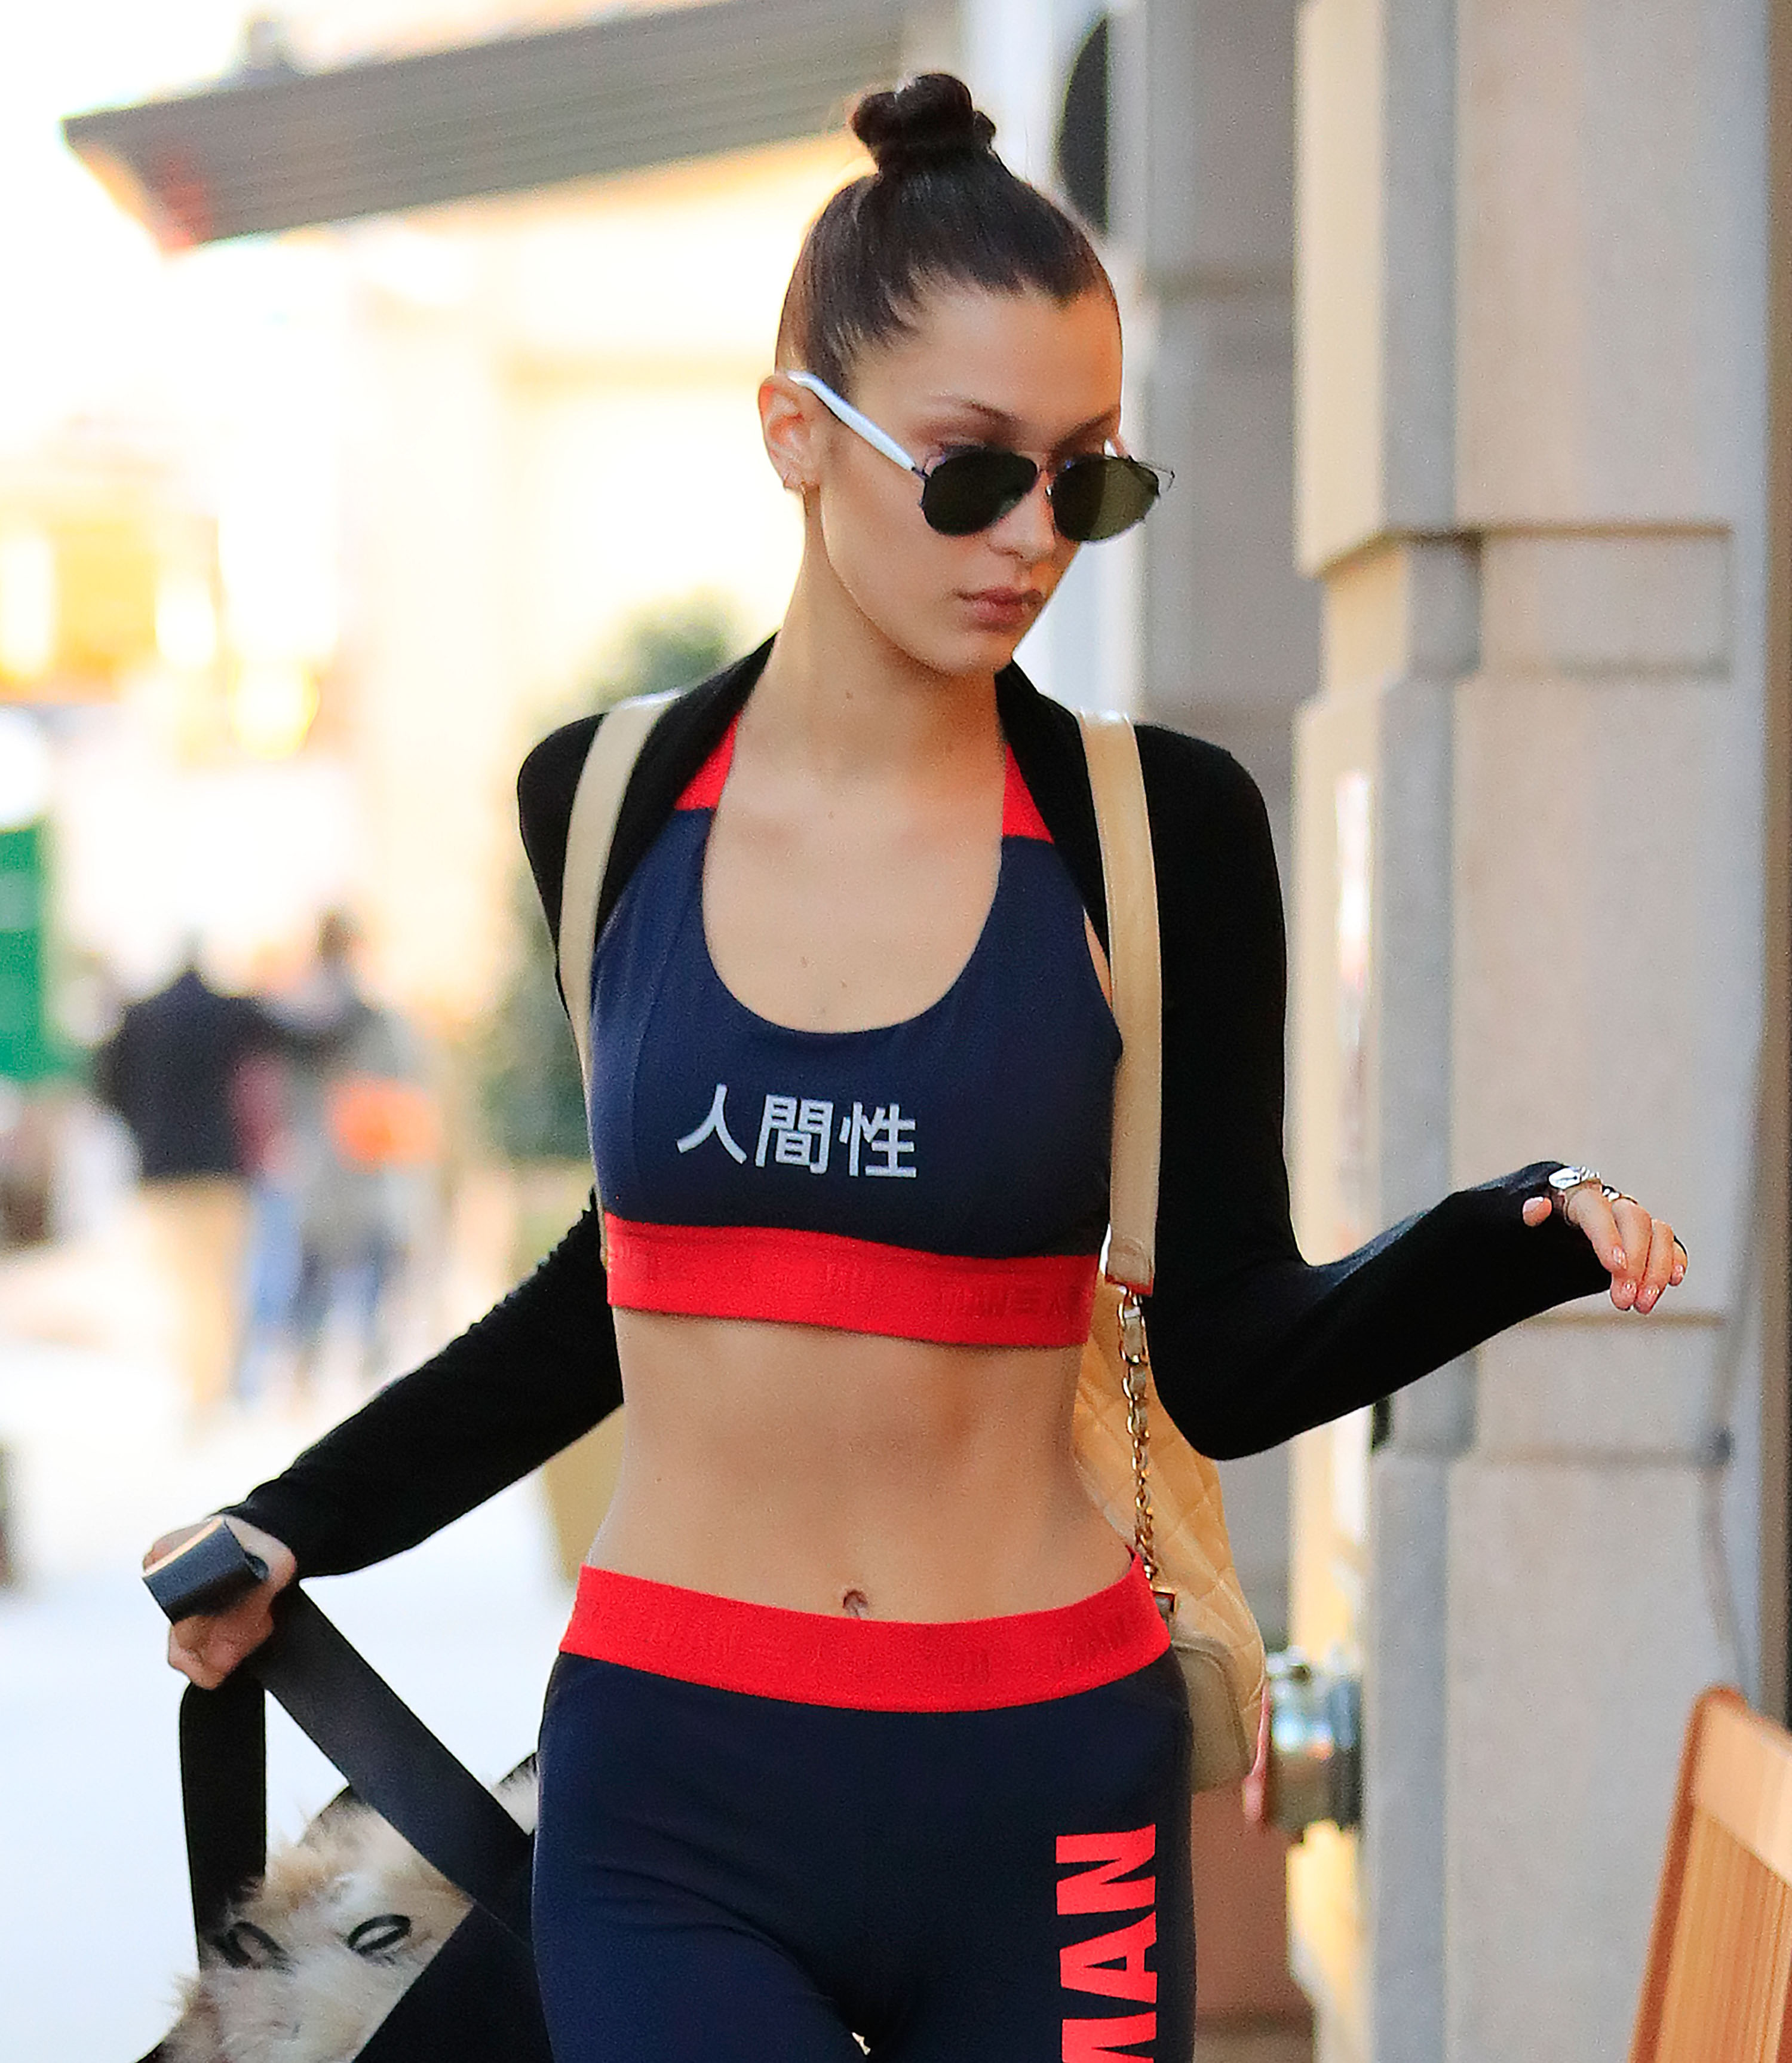 Model Bella Hadid shows off her figure in exercise gear while heading to the gym in New York City. (Photo credit: Splash News)